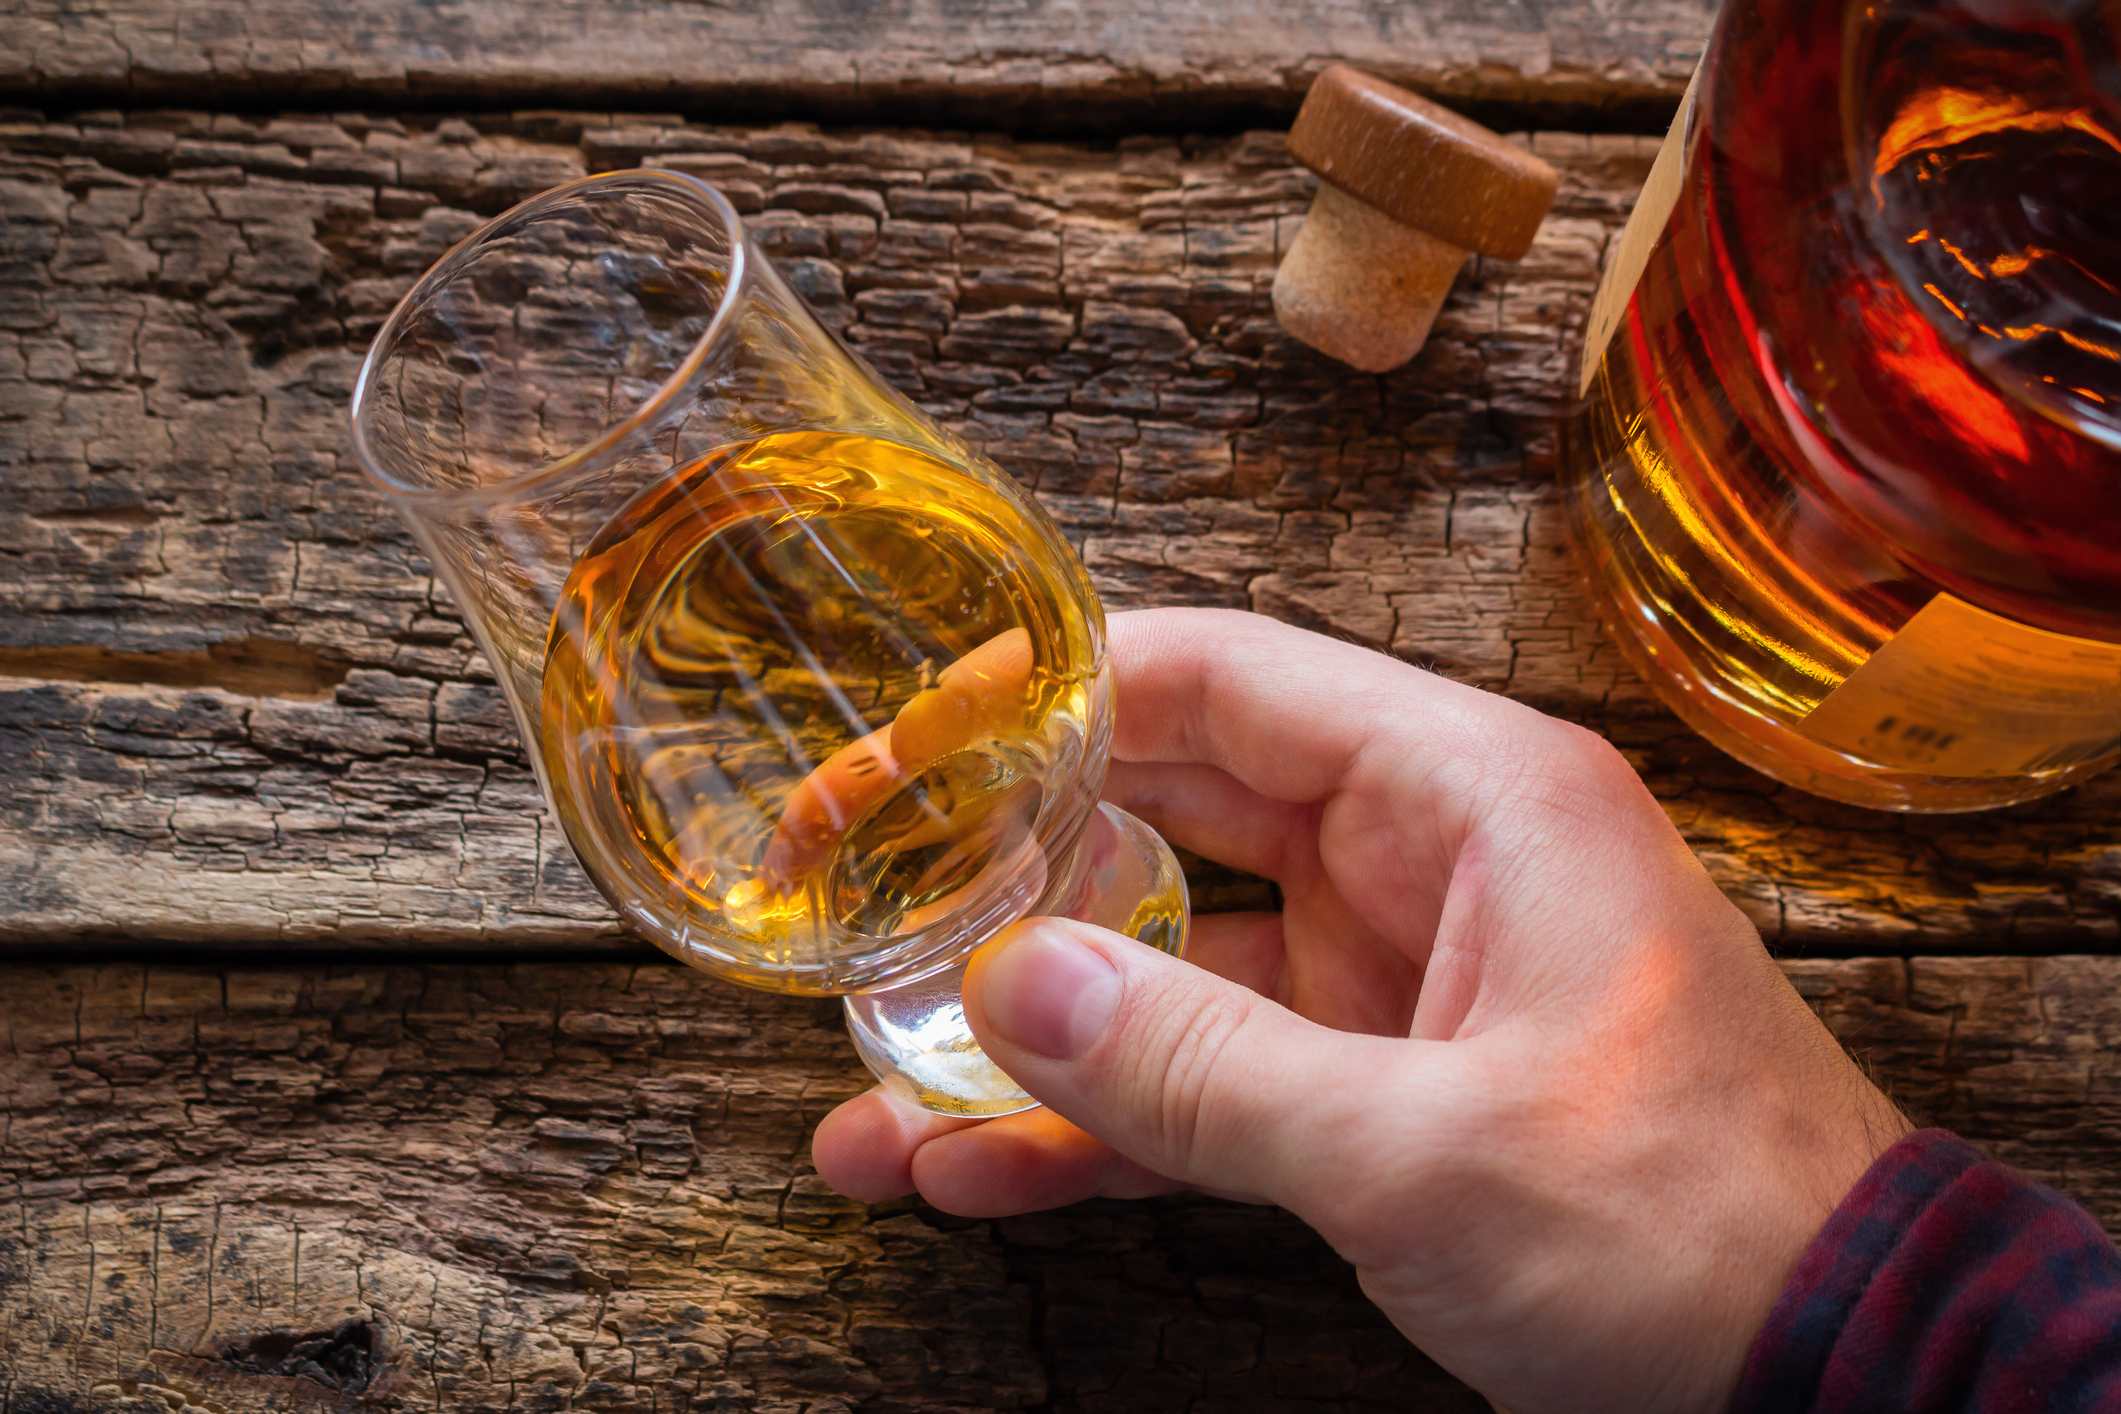 Unlike a blended scotch, when you indulge in a single malt whisky you are experiencing the character of one specific distillery, the flavours of which will depend greatly on how they have chosen to craft their own signature style